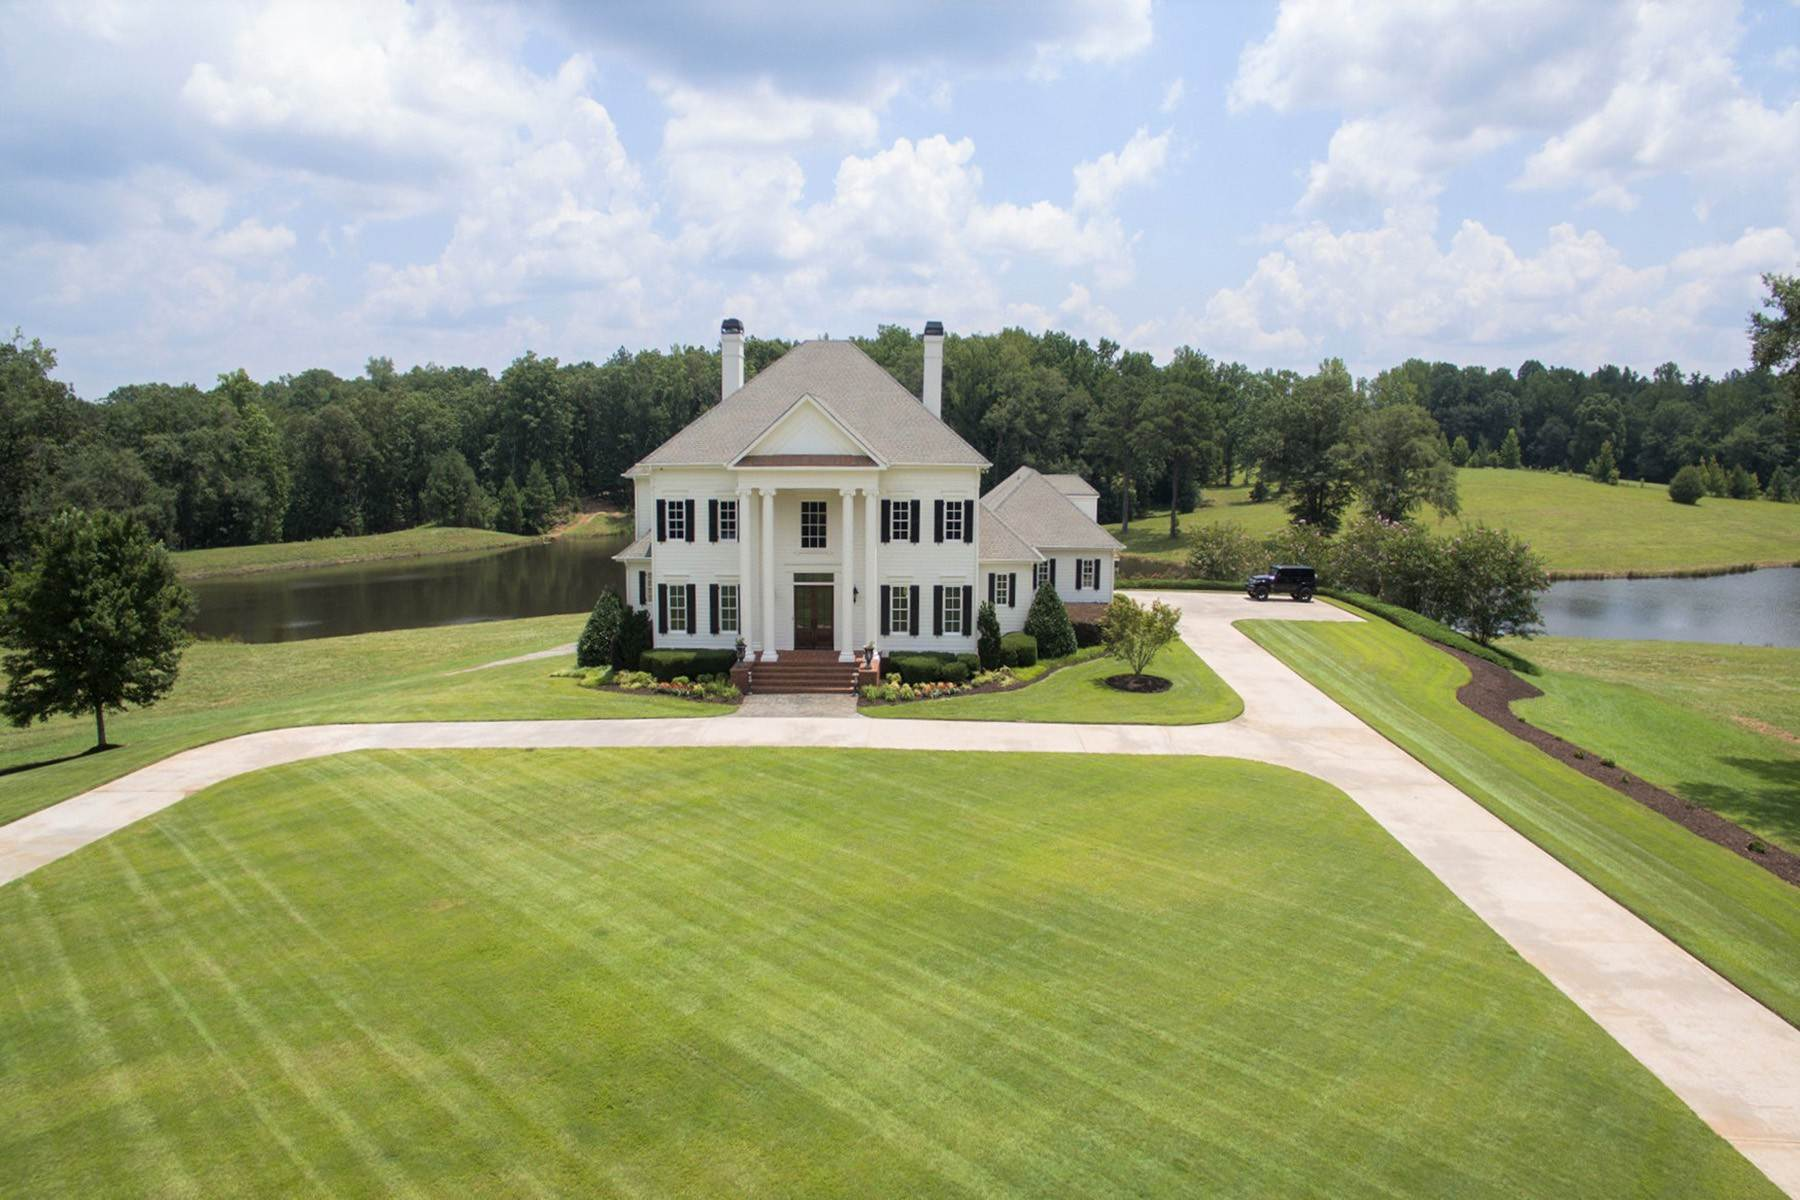 Single Family Homes for Sale at Enjoy Luxury Living In A Private, Relaxing, Rural Setting 833 Hines Road Moreland, Georgia 30259 United States